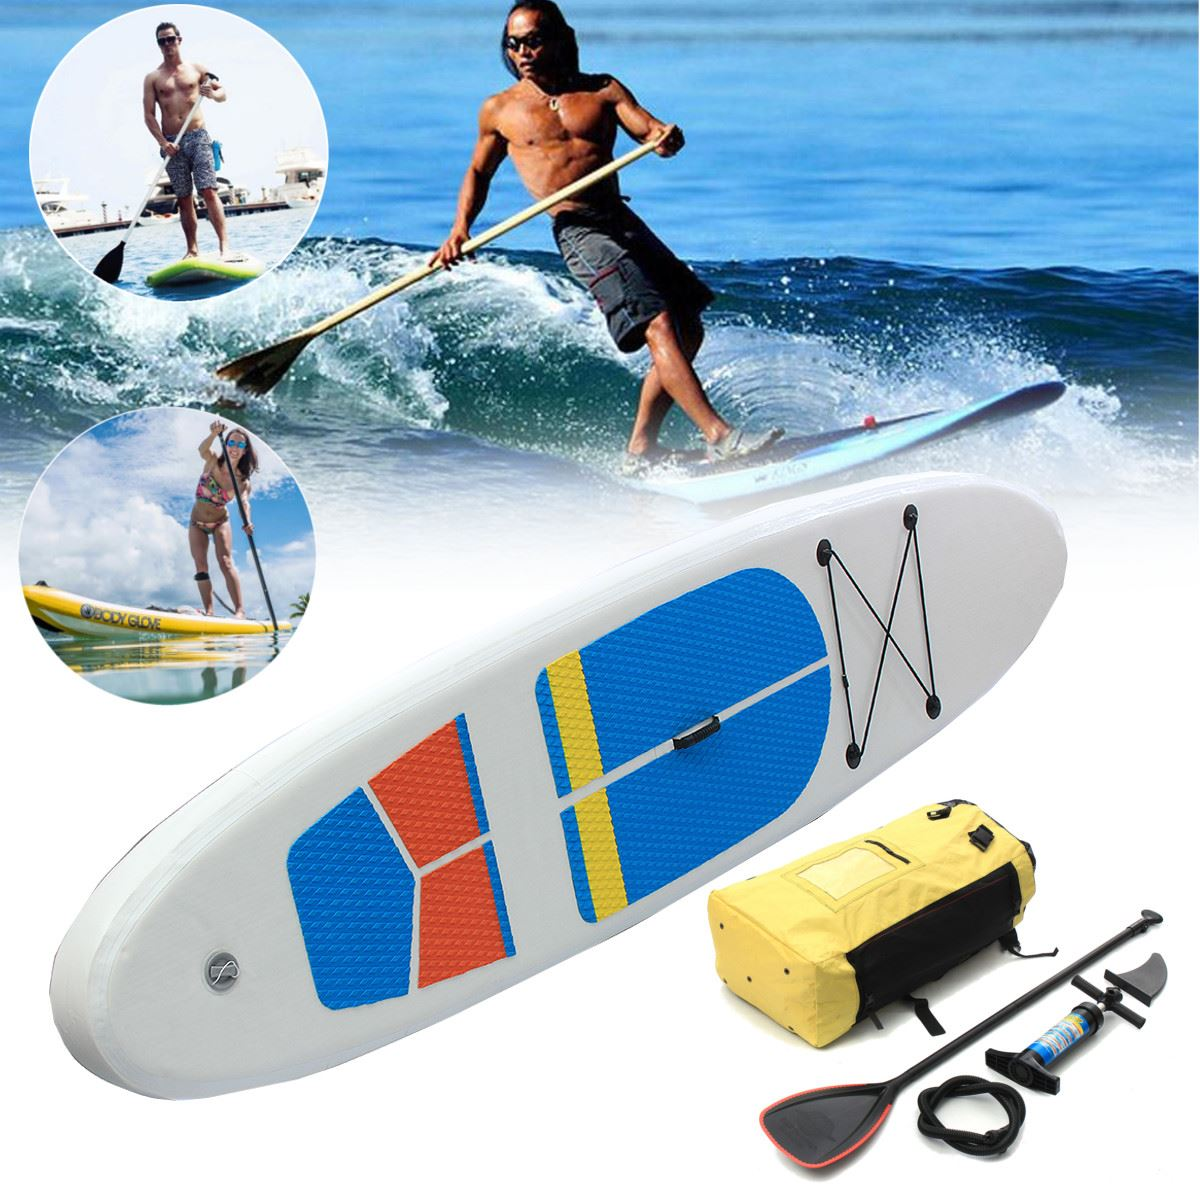 Gofun 330 * 81 * 10cm Stand Up Paddle Surfboard Inflatable Board SUP Set W ave Rider + Pump inflatable surf board paddle boat shoulder bag carry bag for inflatable boat kayak sup board stand up paddle surfing board pump oar dinghy raft surf board a05011